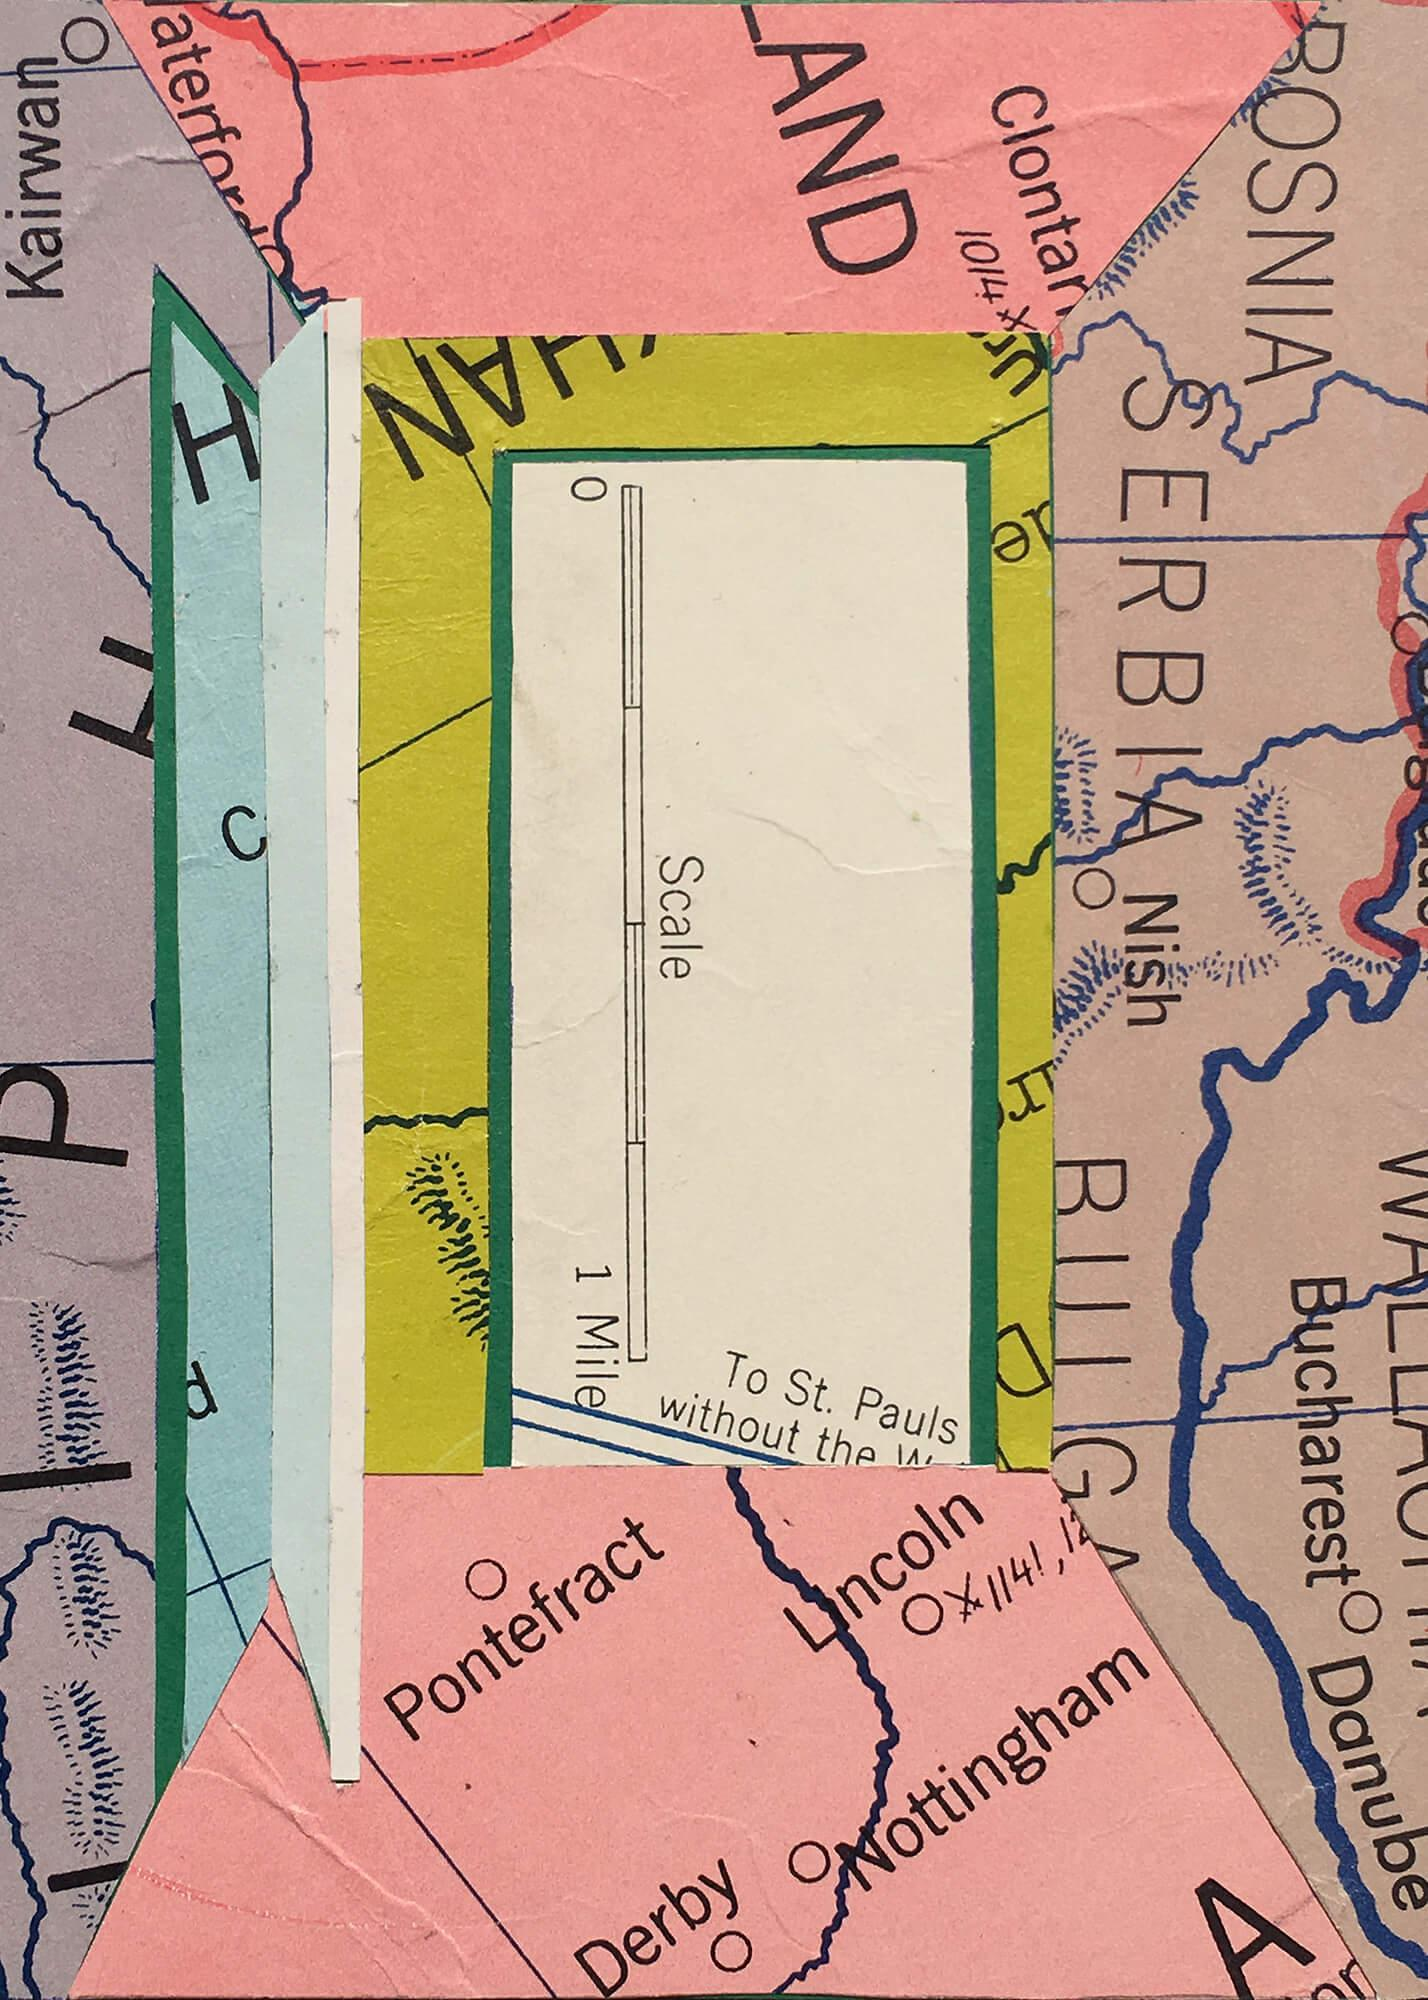 Off The Map III, #2 - Collage - Paper, maps Map Collage on map slide show, map travel, map facebook covers, map creator, map pencil, map in india, map gift tags, map in europe, map still life, map de france, map making, map of college football teams, map major rivers in australia, map with mountains, map with states, map distance between cities, map of dallas texas and surrounding areas, map vintage, map in spanish, map history,